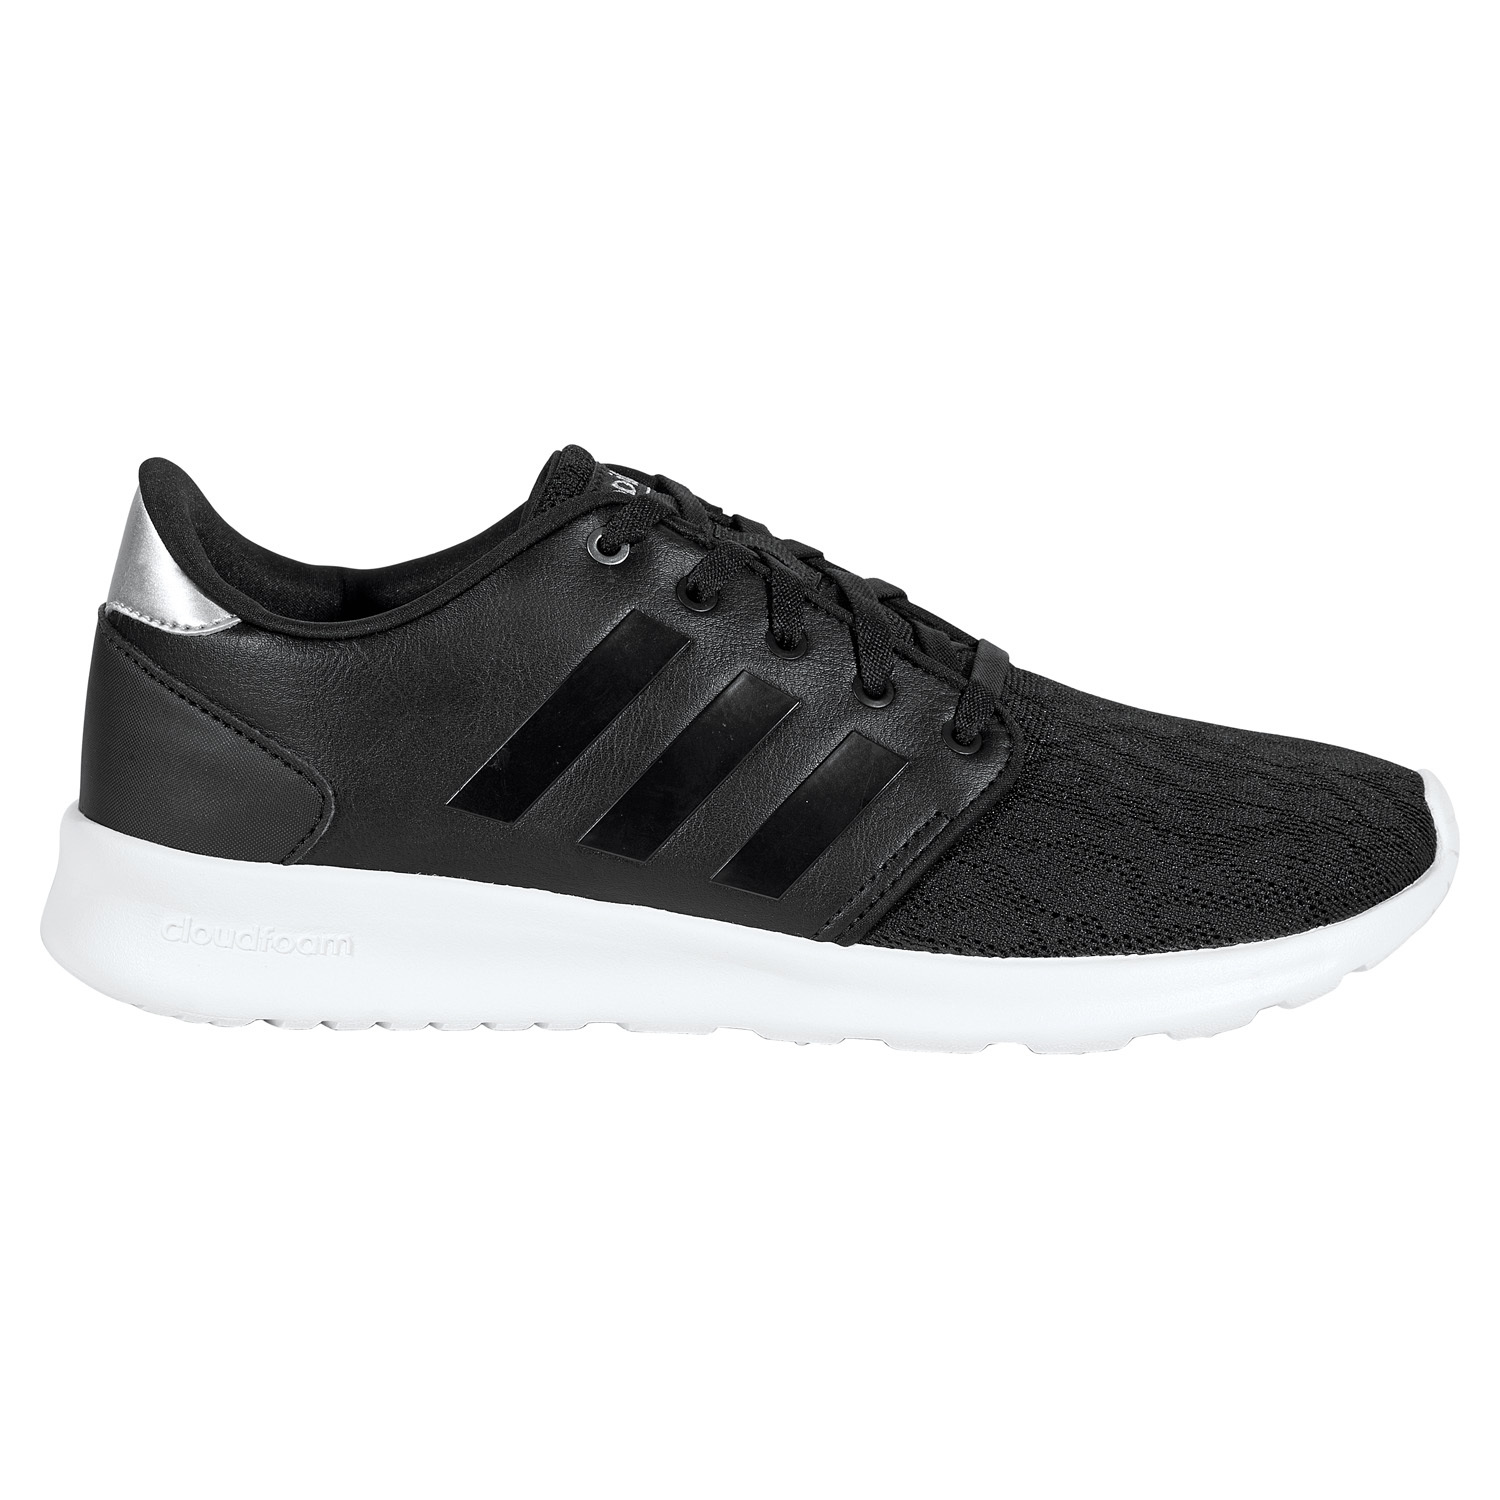 adidas cloudfoam qt racer footwear women fashion and. Black Bedroom Furniture Sets. Home Design Ideas